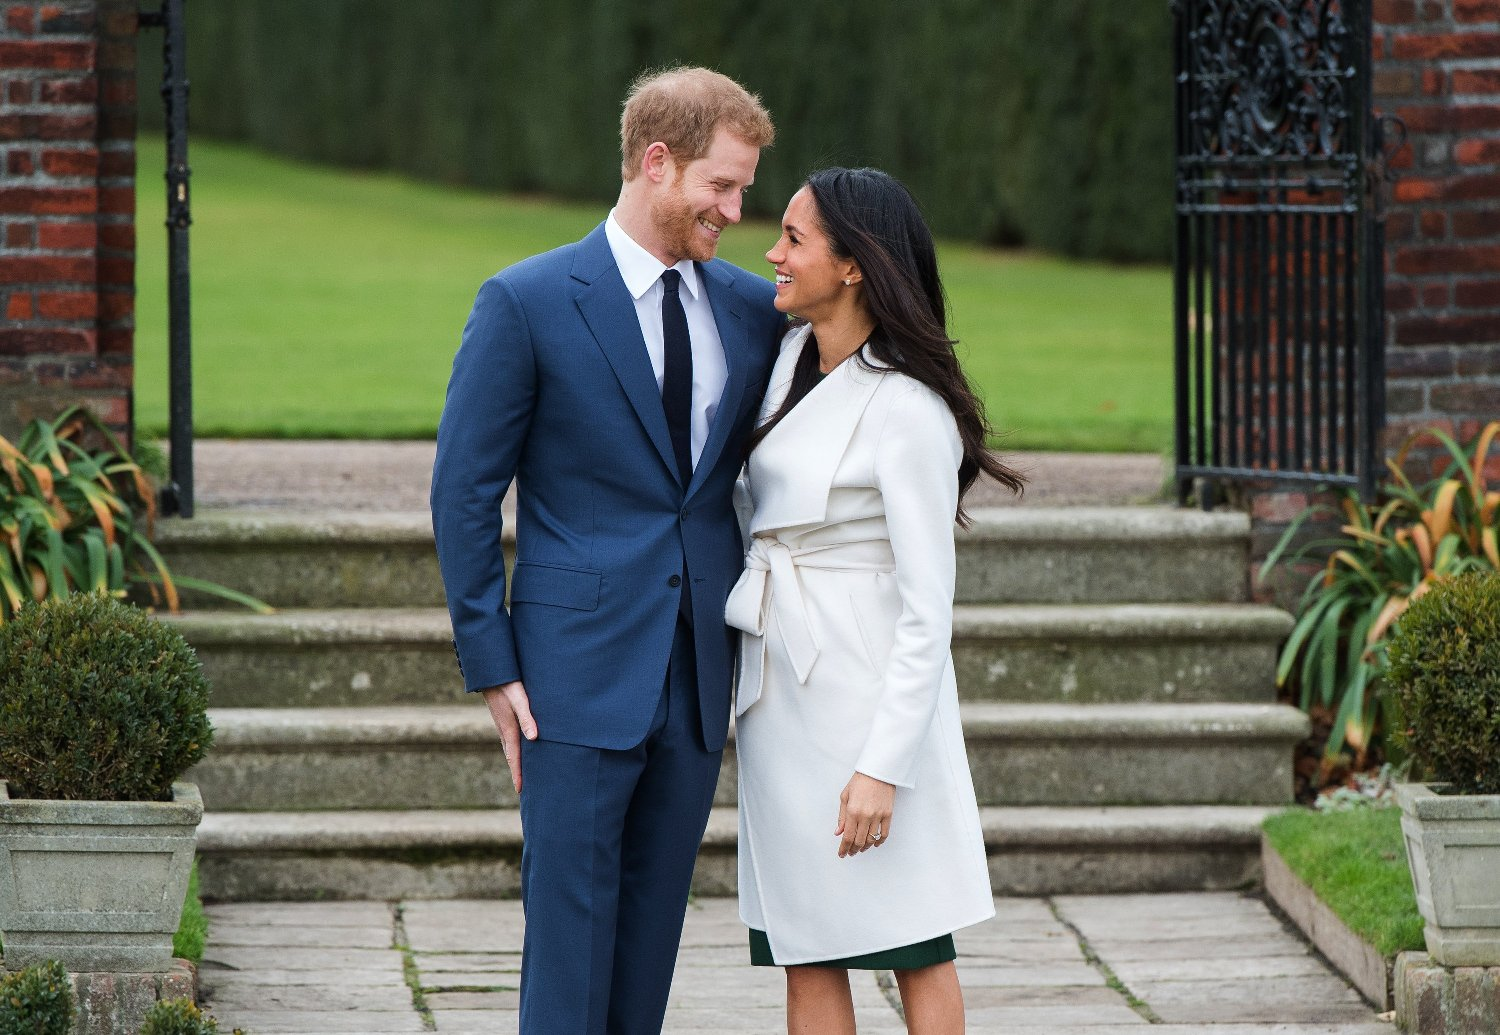 Prince Harry and Meghan Markle in the Sunken Garden at Kensington Palace, London, after the announcement of their engagement., Image: 356277546, License: Rights-managed, Restrictions: , Model Release: no, Credit line: Profimedia, Press Association